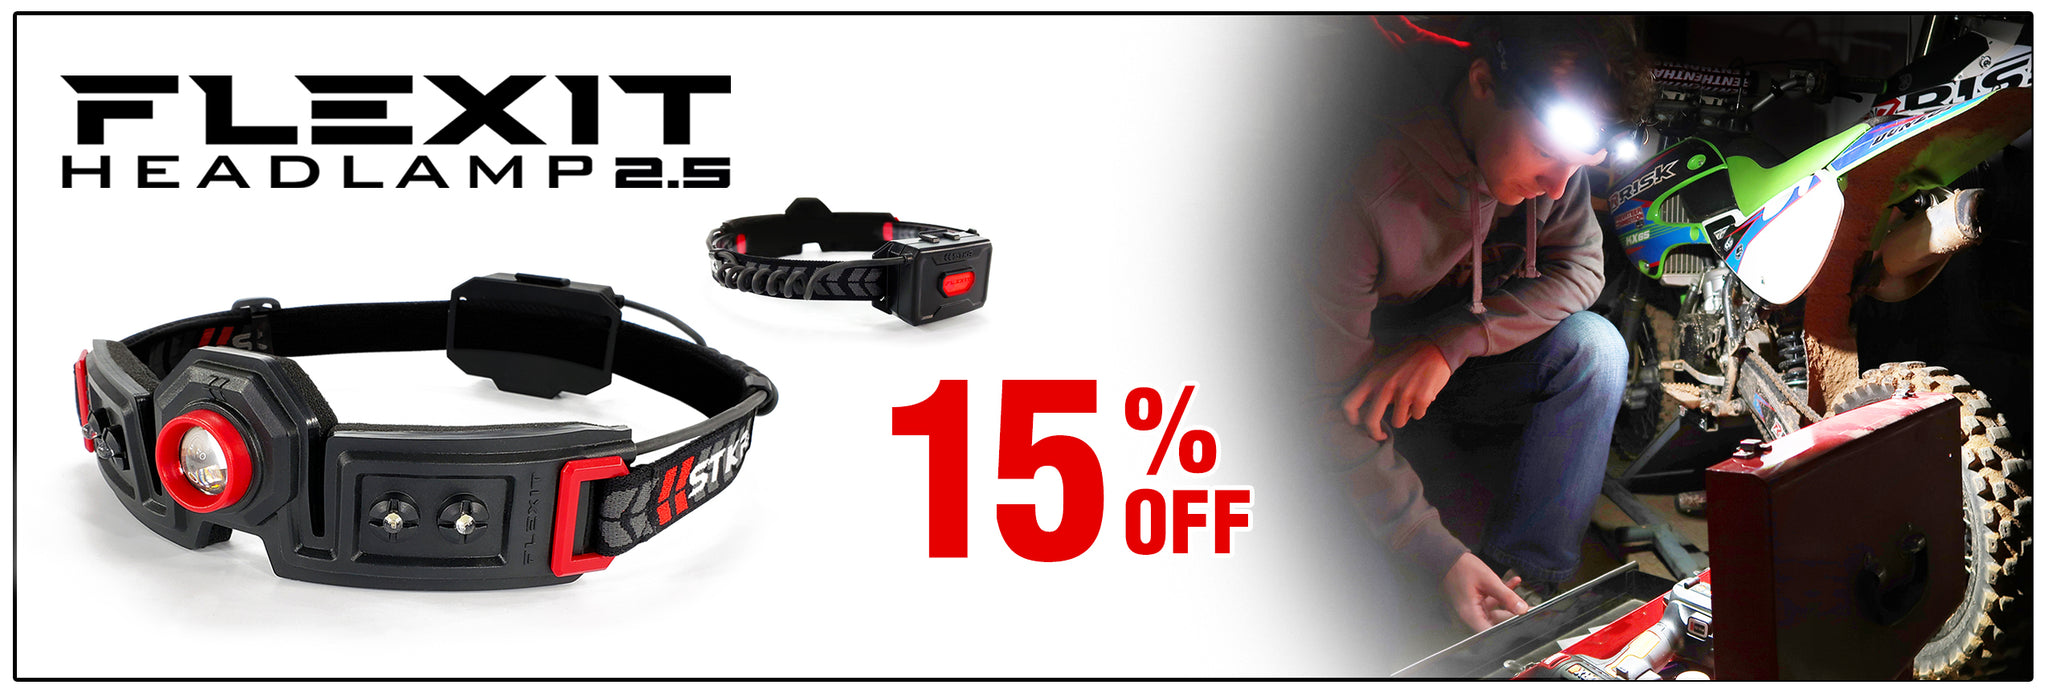 Deal of the Month - 15% off FLEXIT Headlamp 2.5